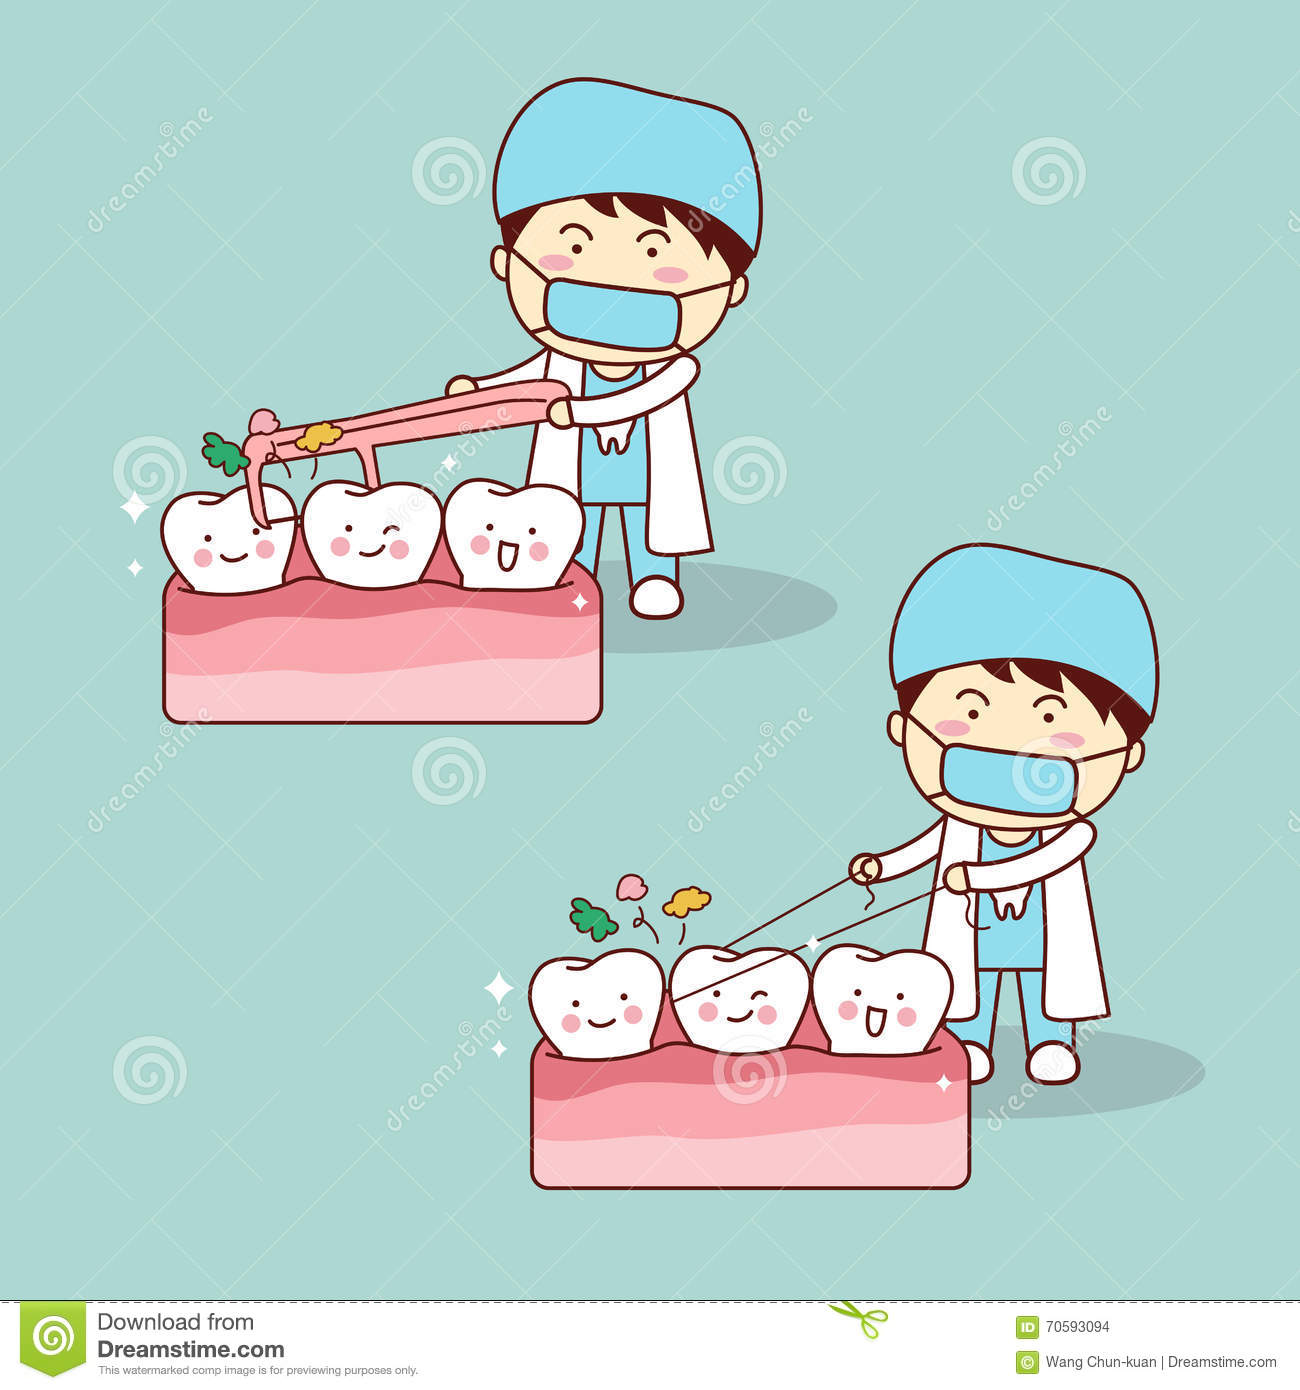 dentist-use-floss-clean-teeth-cartoon-doctor-great-dental-care-concept-70593094.jpg